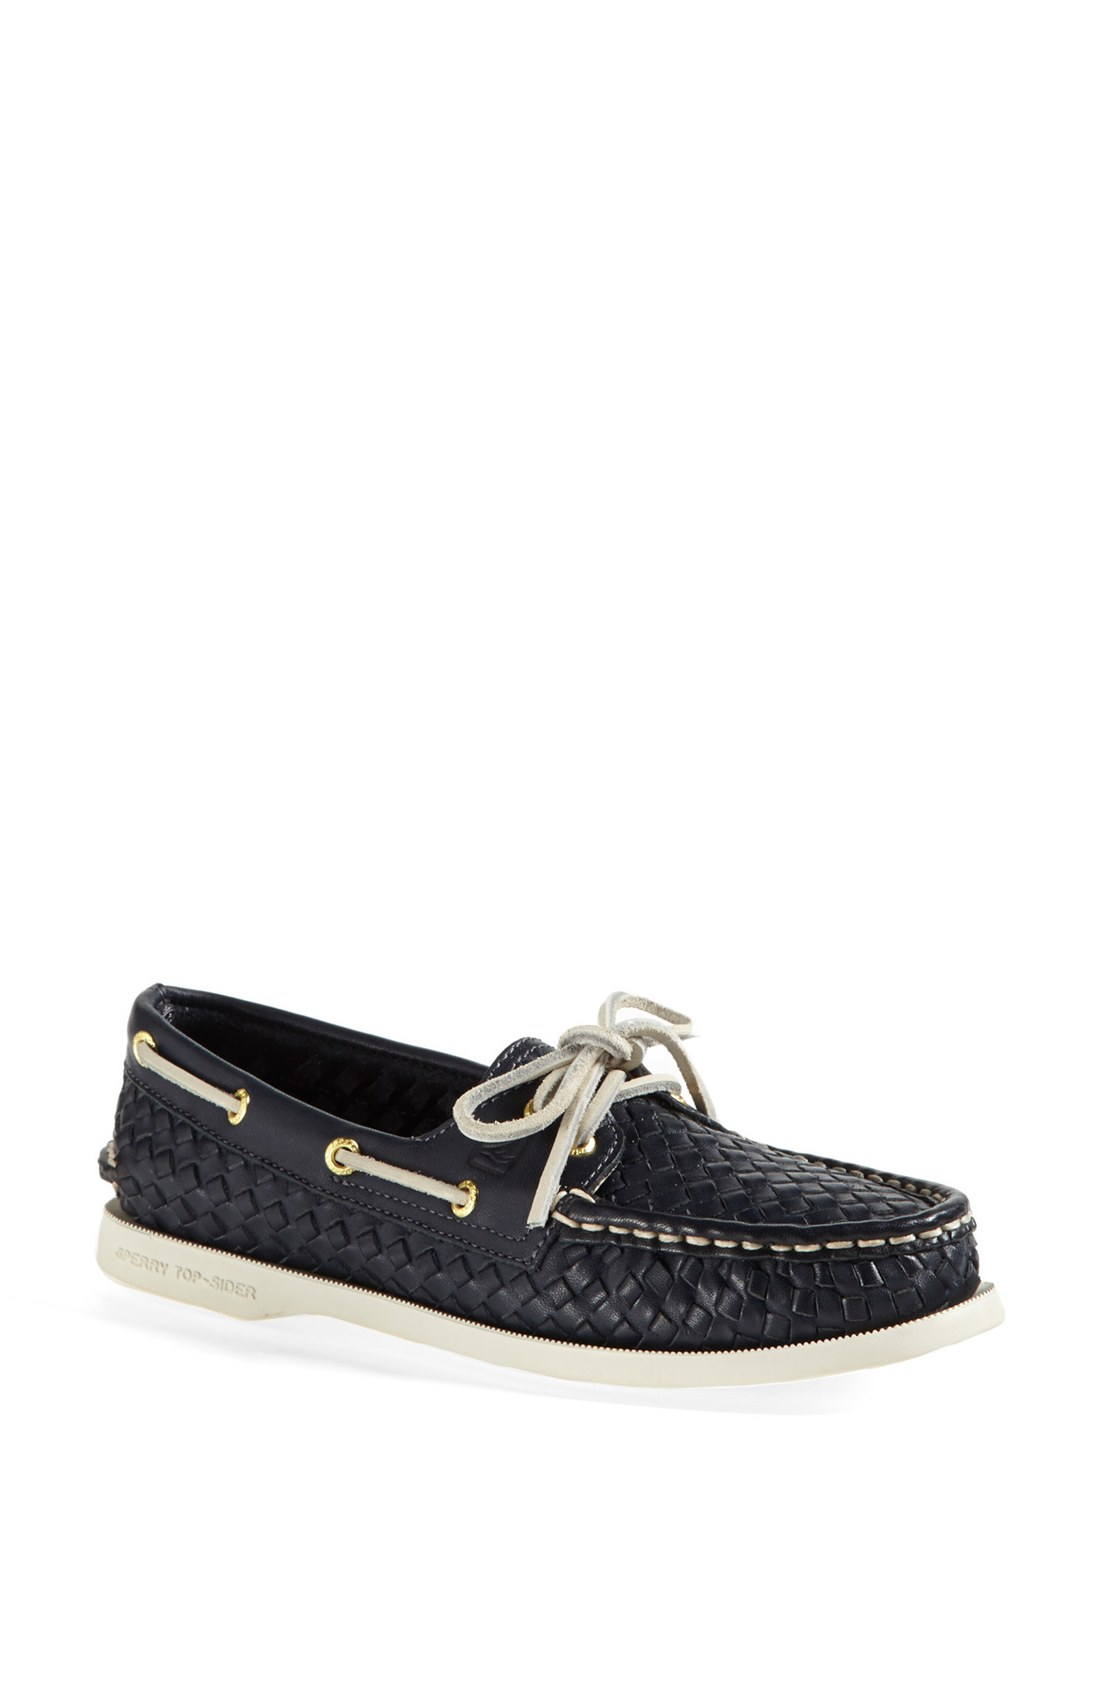 Sperry Montauk Woven Leather Boat Shoes